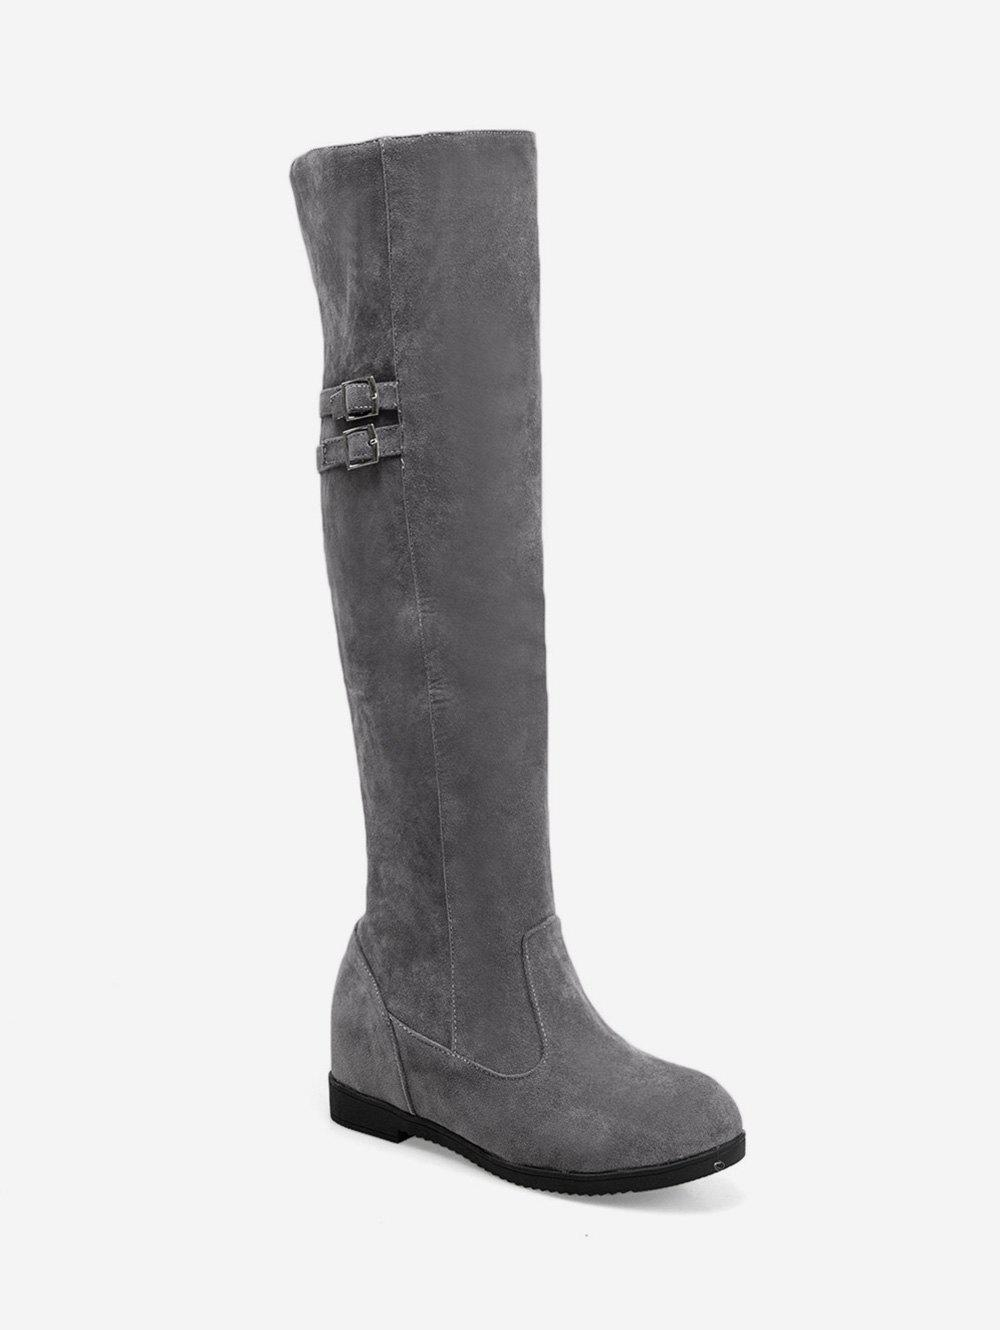 Outfit Plus Size Buckle Detail Hidden Heel Knee High Boots